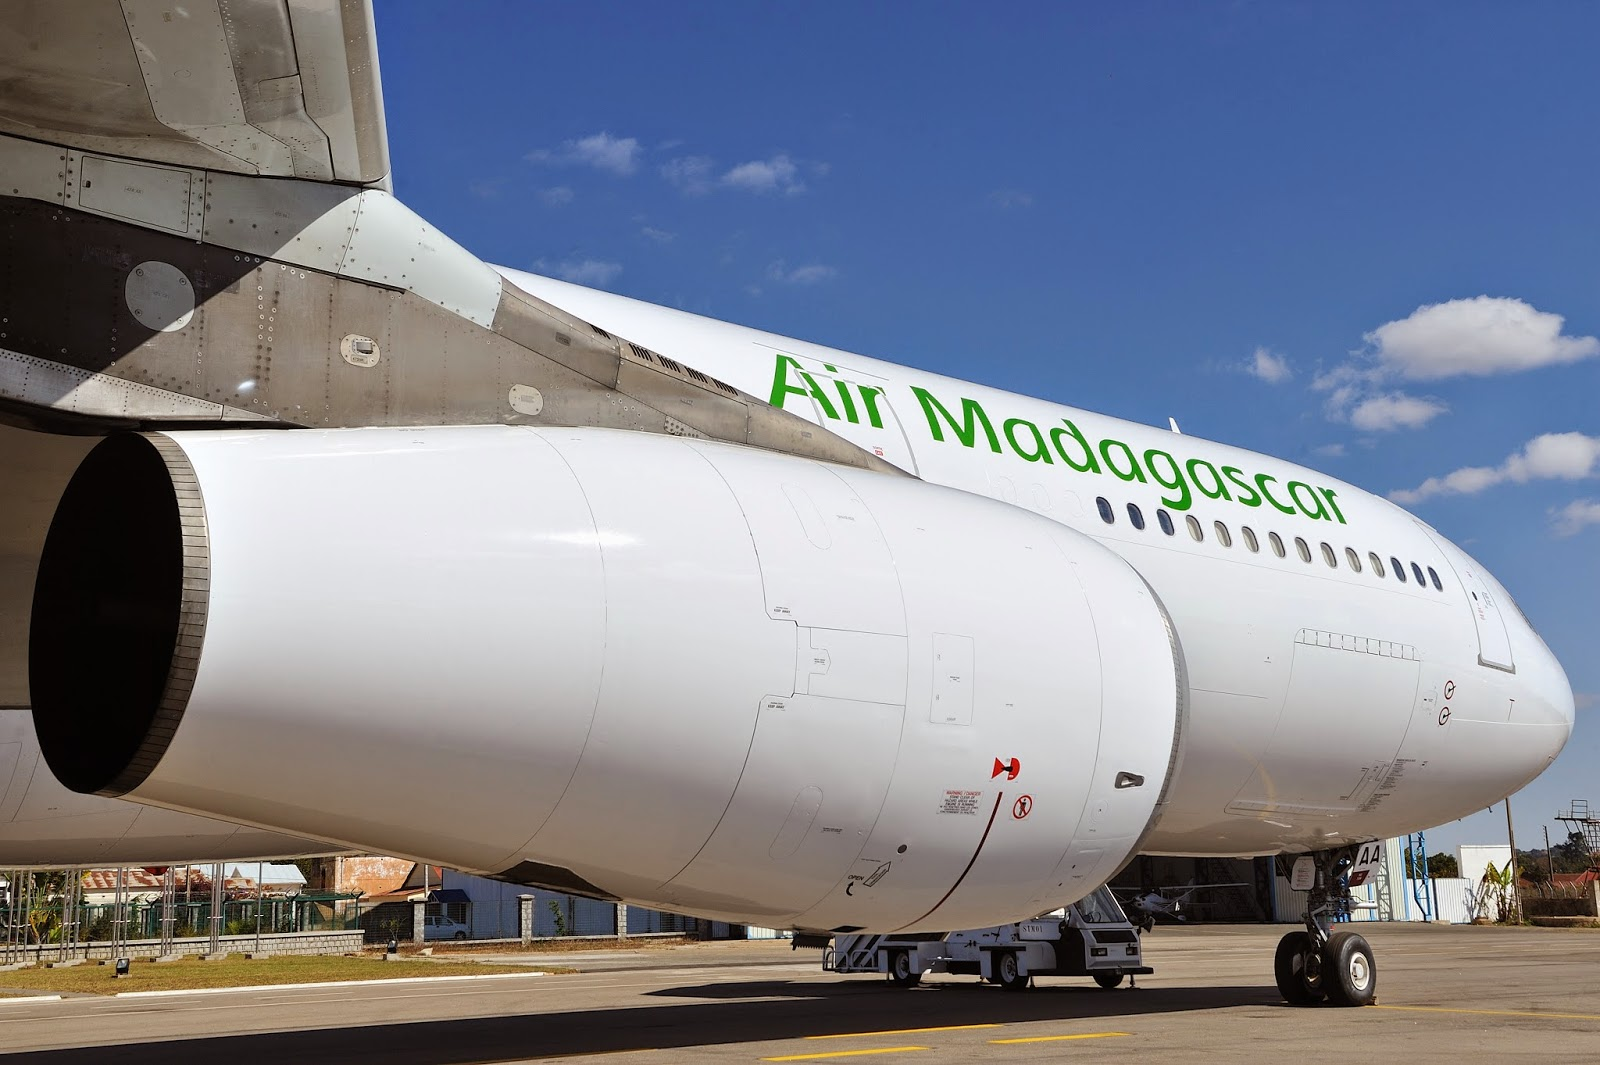 Suspension des vols Air Madagascar entre CDG et Madagascar